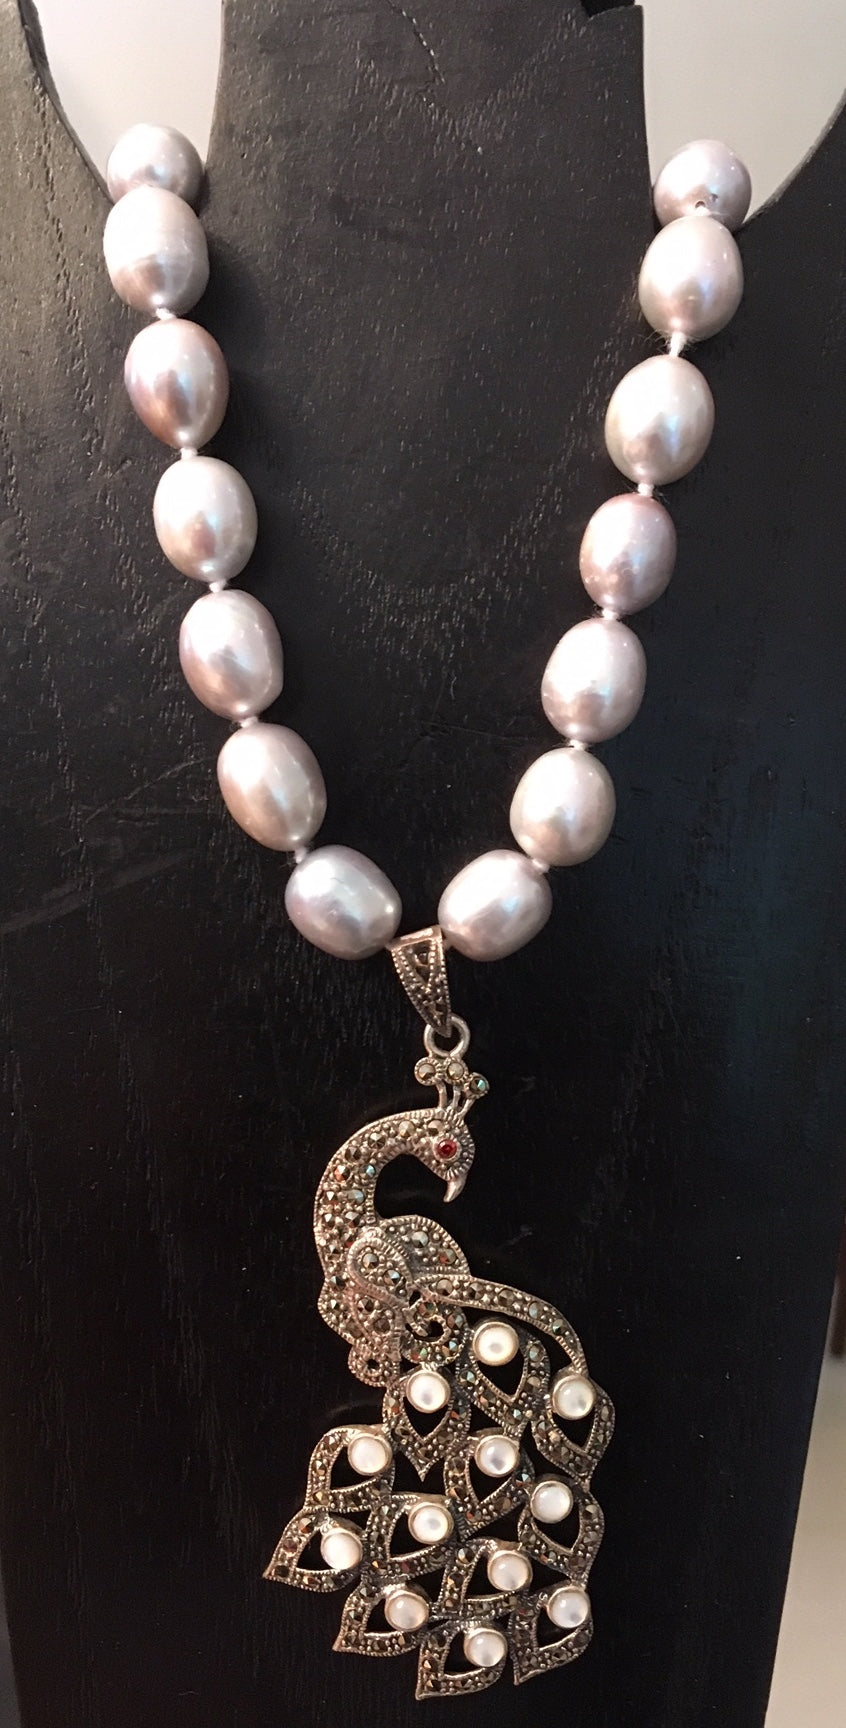 Cultured pearls with a large marcasite peacock pendant